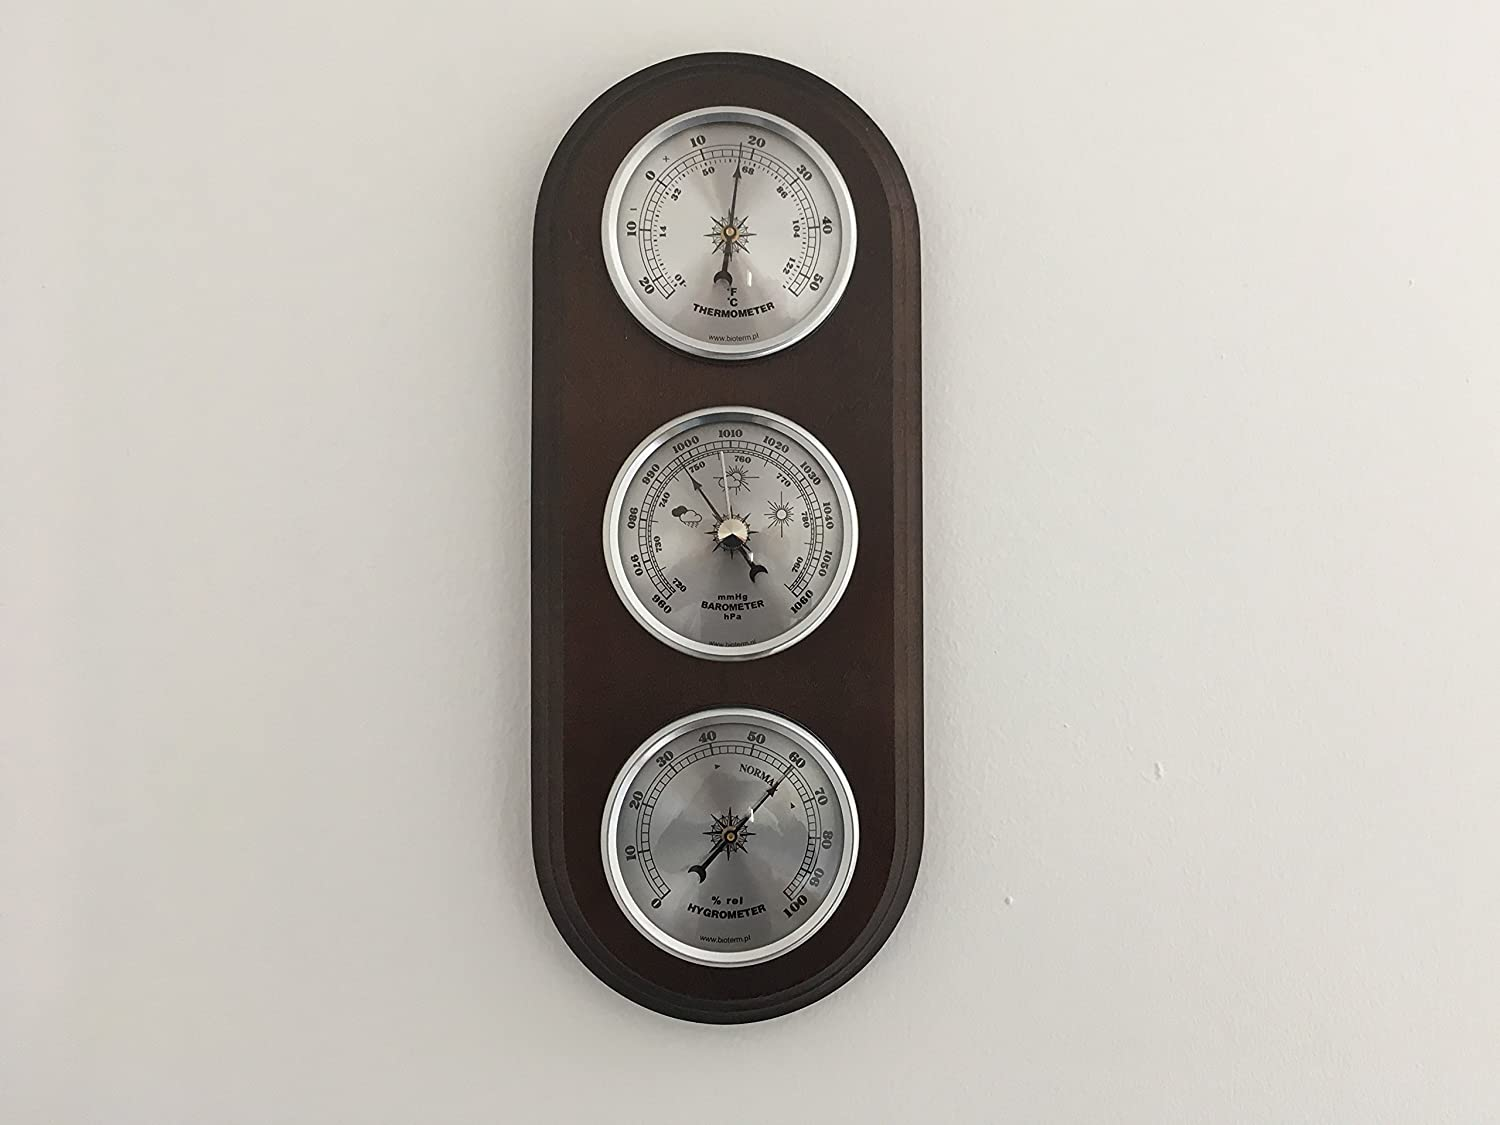 Traditional Weather Station Barometer Thermometer Hygrometer Silver Coloured Dials Quality Instrument Browin